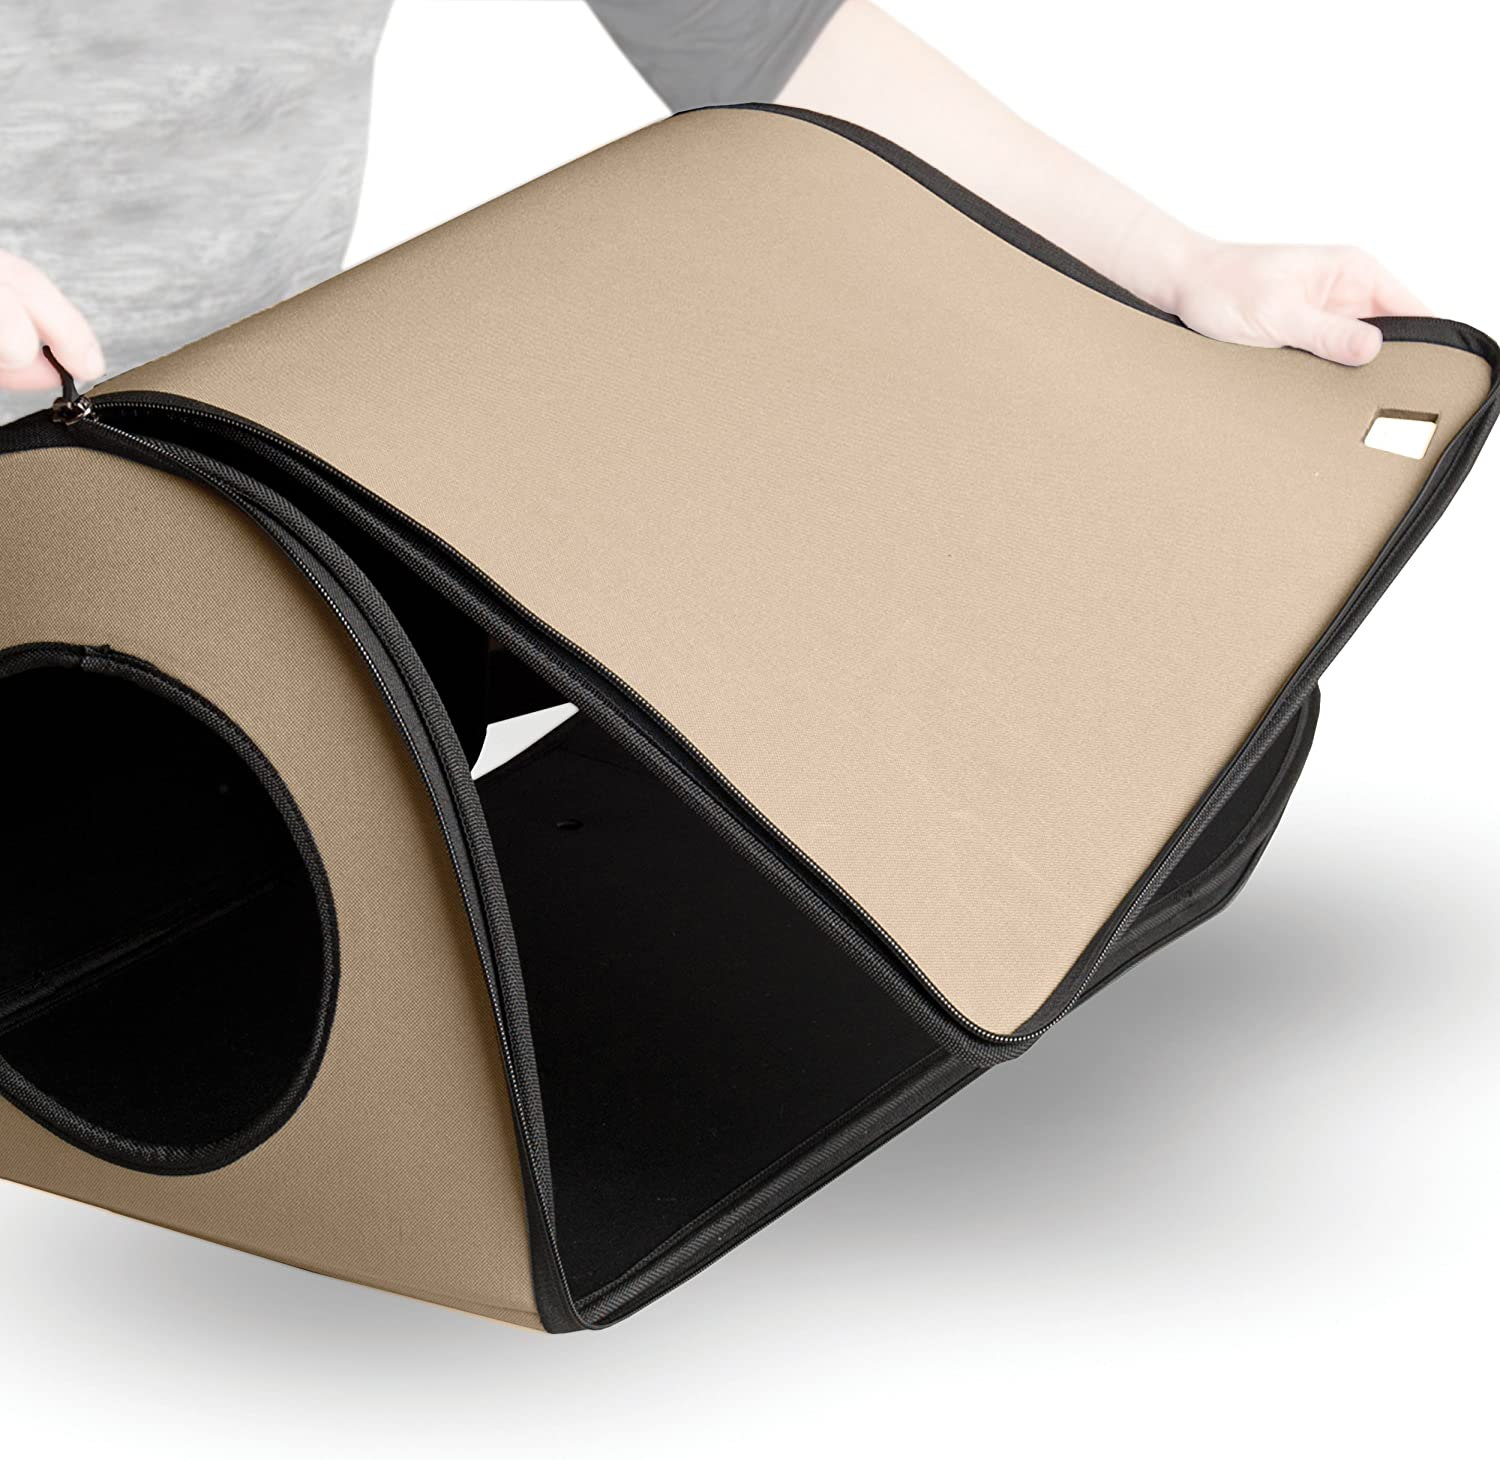 K&H Pet Products Mod Thermo-Kitty Heated Shelter Great for Outdoor Cats Tan